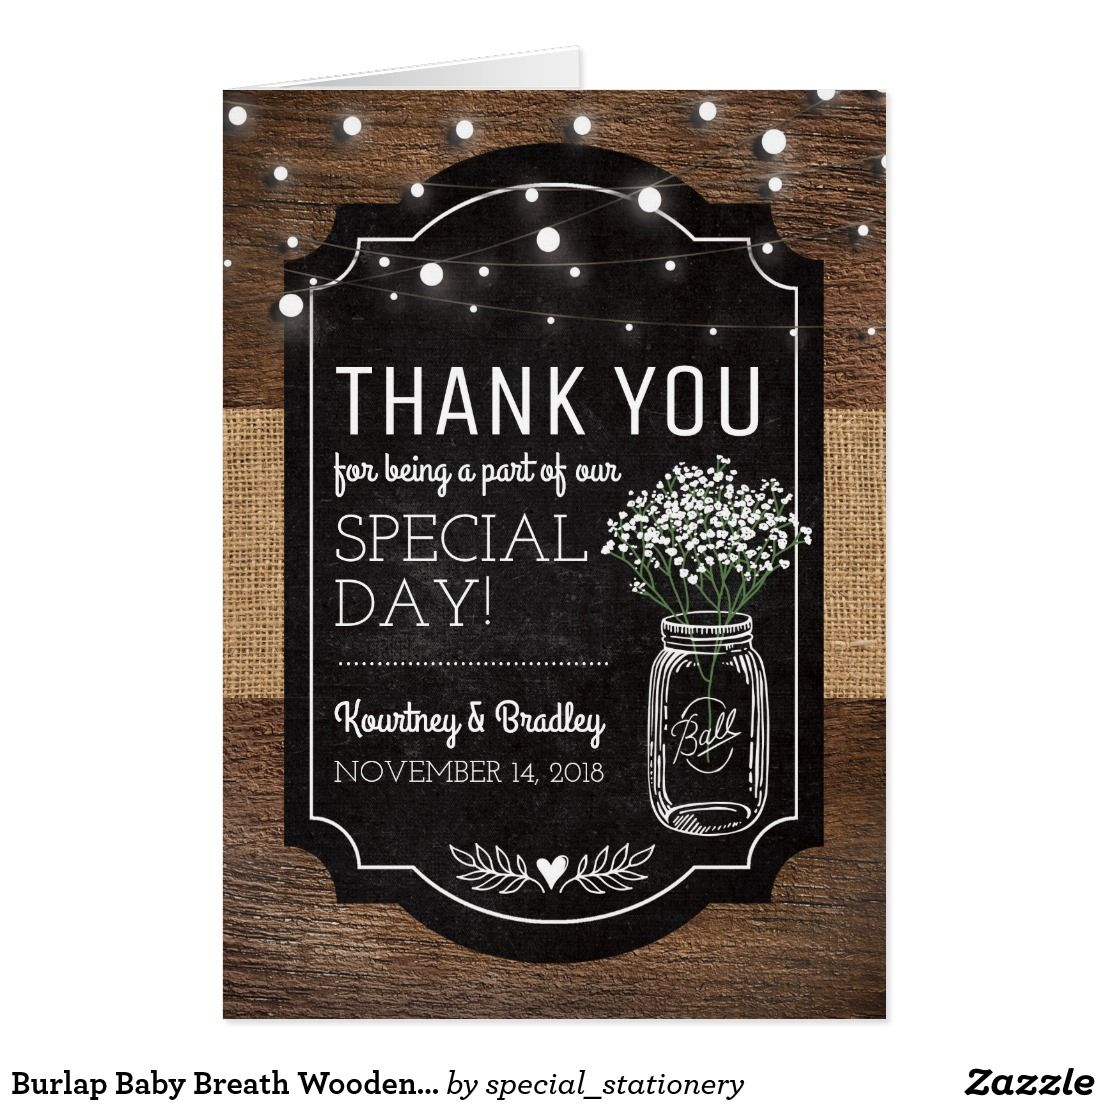 Burlap Baby Breath Wooden Wedding Thank You Card Rustic Country